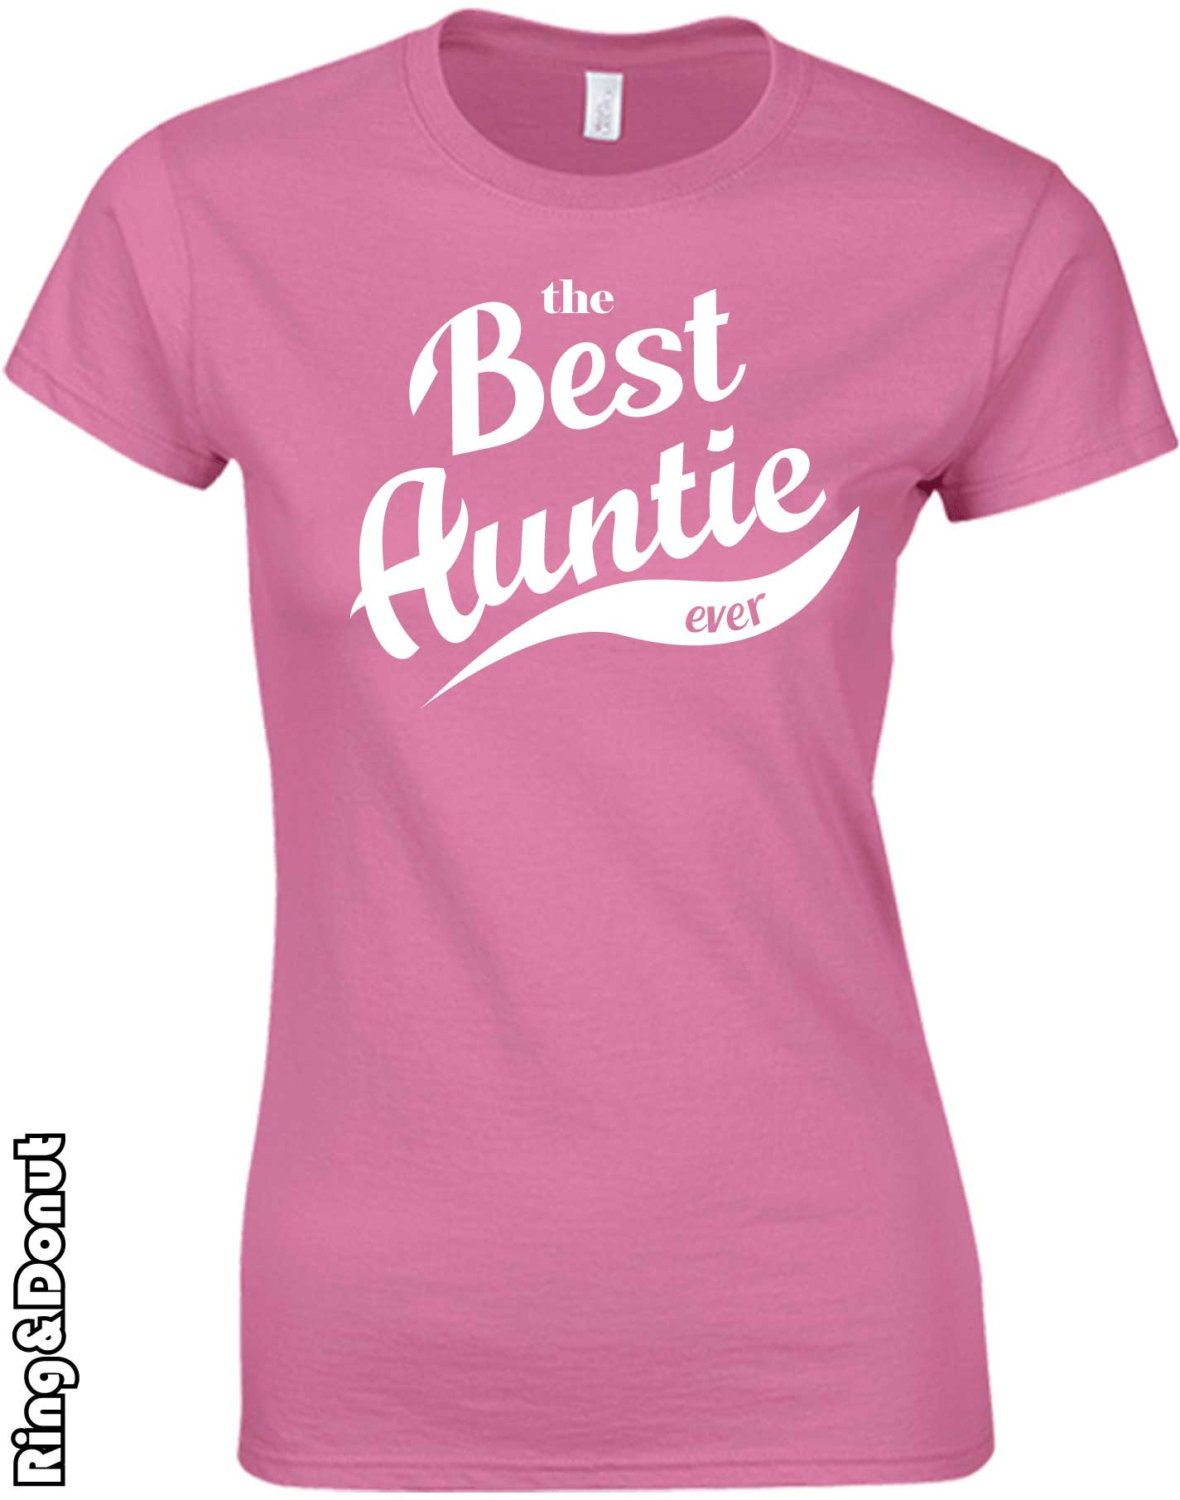 26557694da the best auntie ever tshirt, Funny women t shirt, aunt to be ladies Shirt,  Baby Newborn, New Aunt Gift, Funny, personalized tshirt, pregnant by  RingAndDonut ...